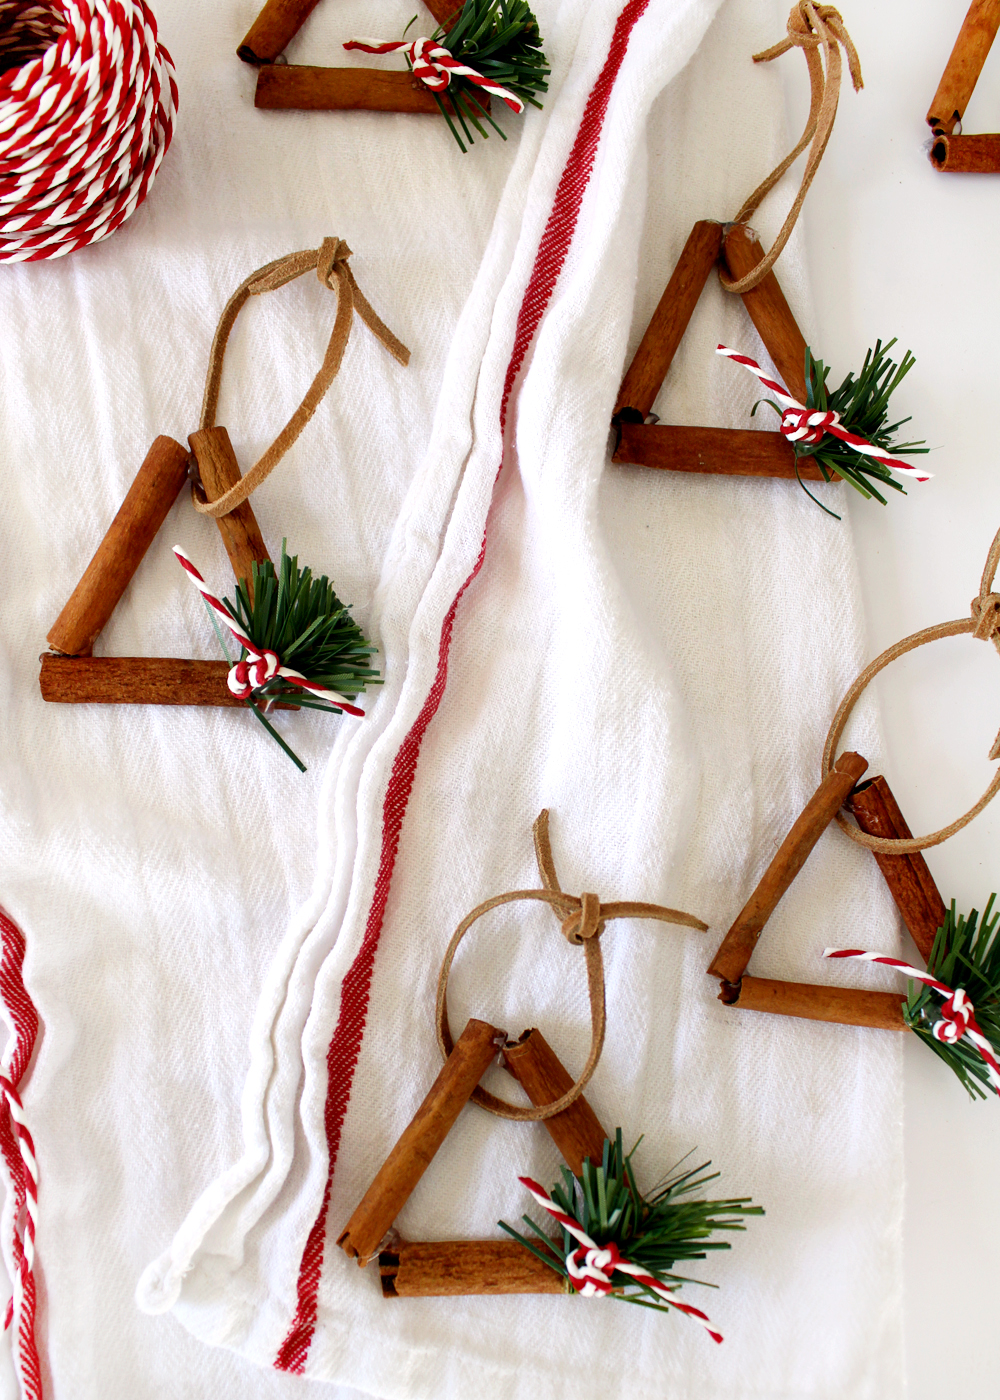 Christmas gift idea! get crafty with these cinnamon stick ornaments